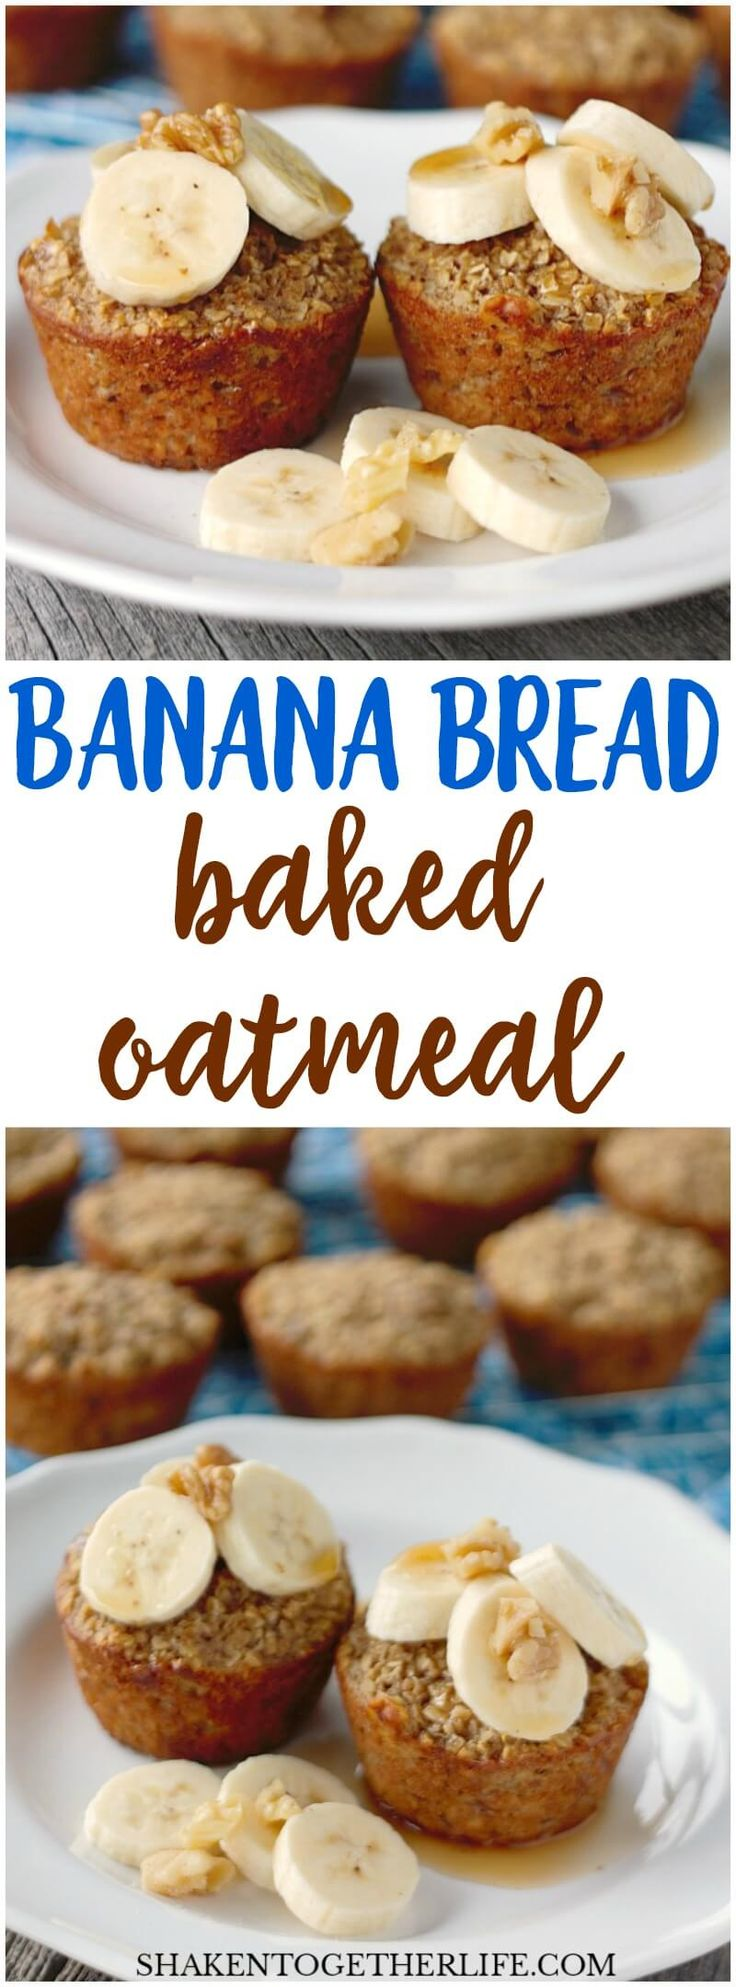 These Banana Bread Baked Oatmeal Cups are hearty, healthy and freezer friendly! Top with bananas, walnuts and a drizzle of syrup for a deliciously easy breakfast!